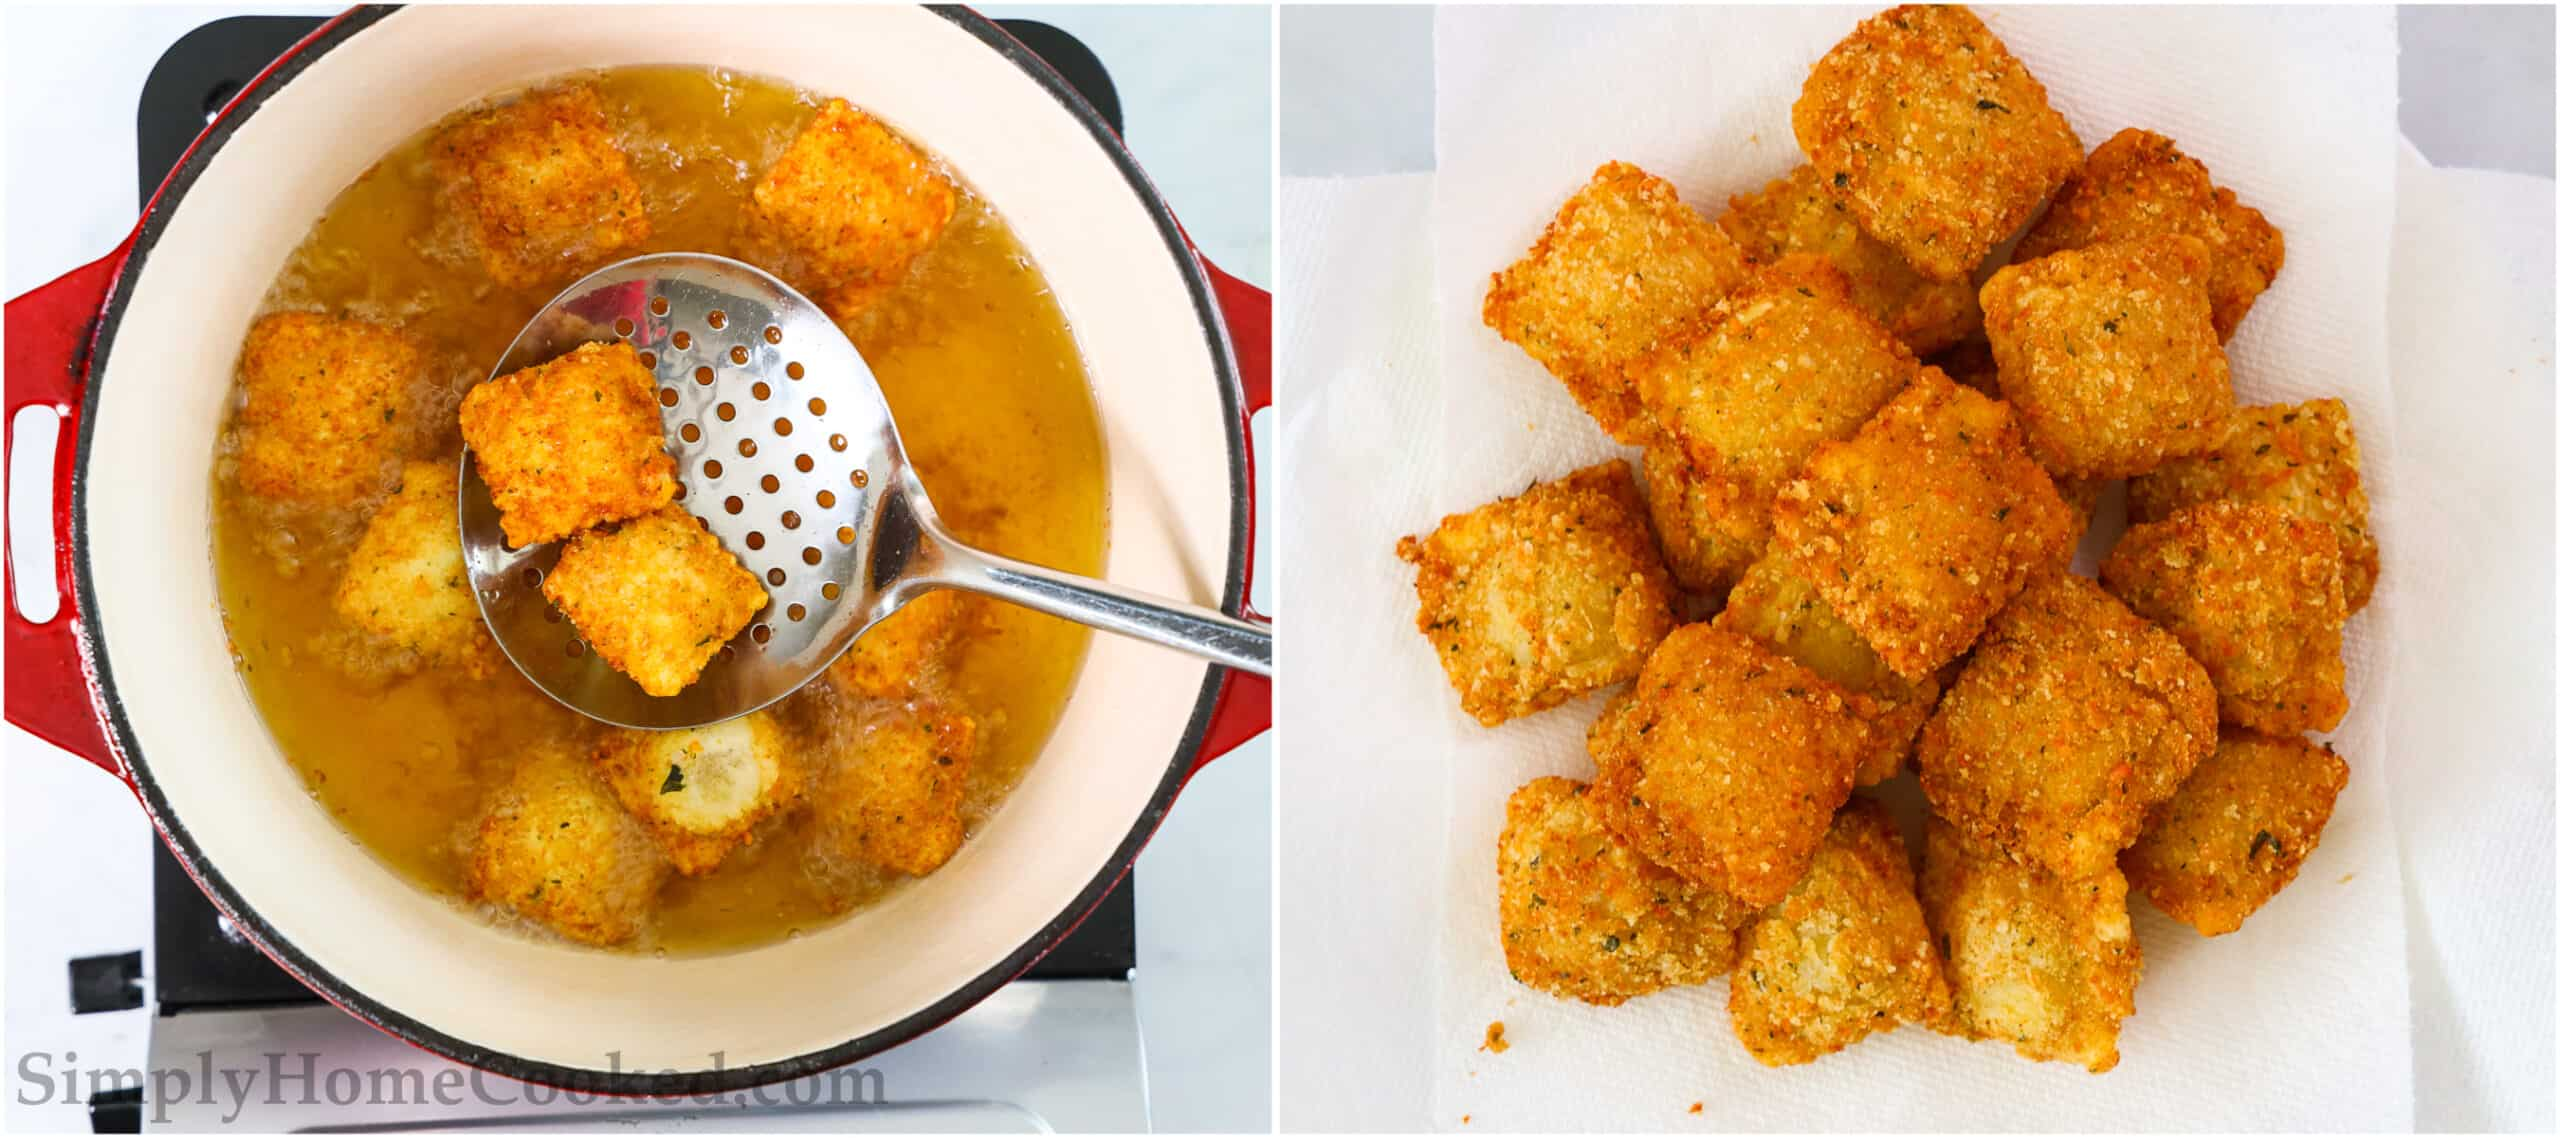 Steps to make Crispy Fried Ravioli, including removing the ravioli from the oil with a slotted spoon and placing them on a plate with paper towels to absorb oil.